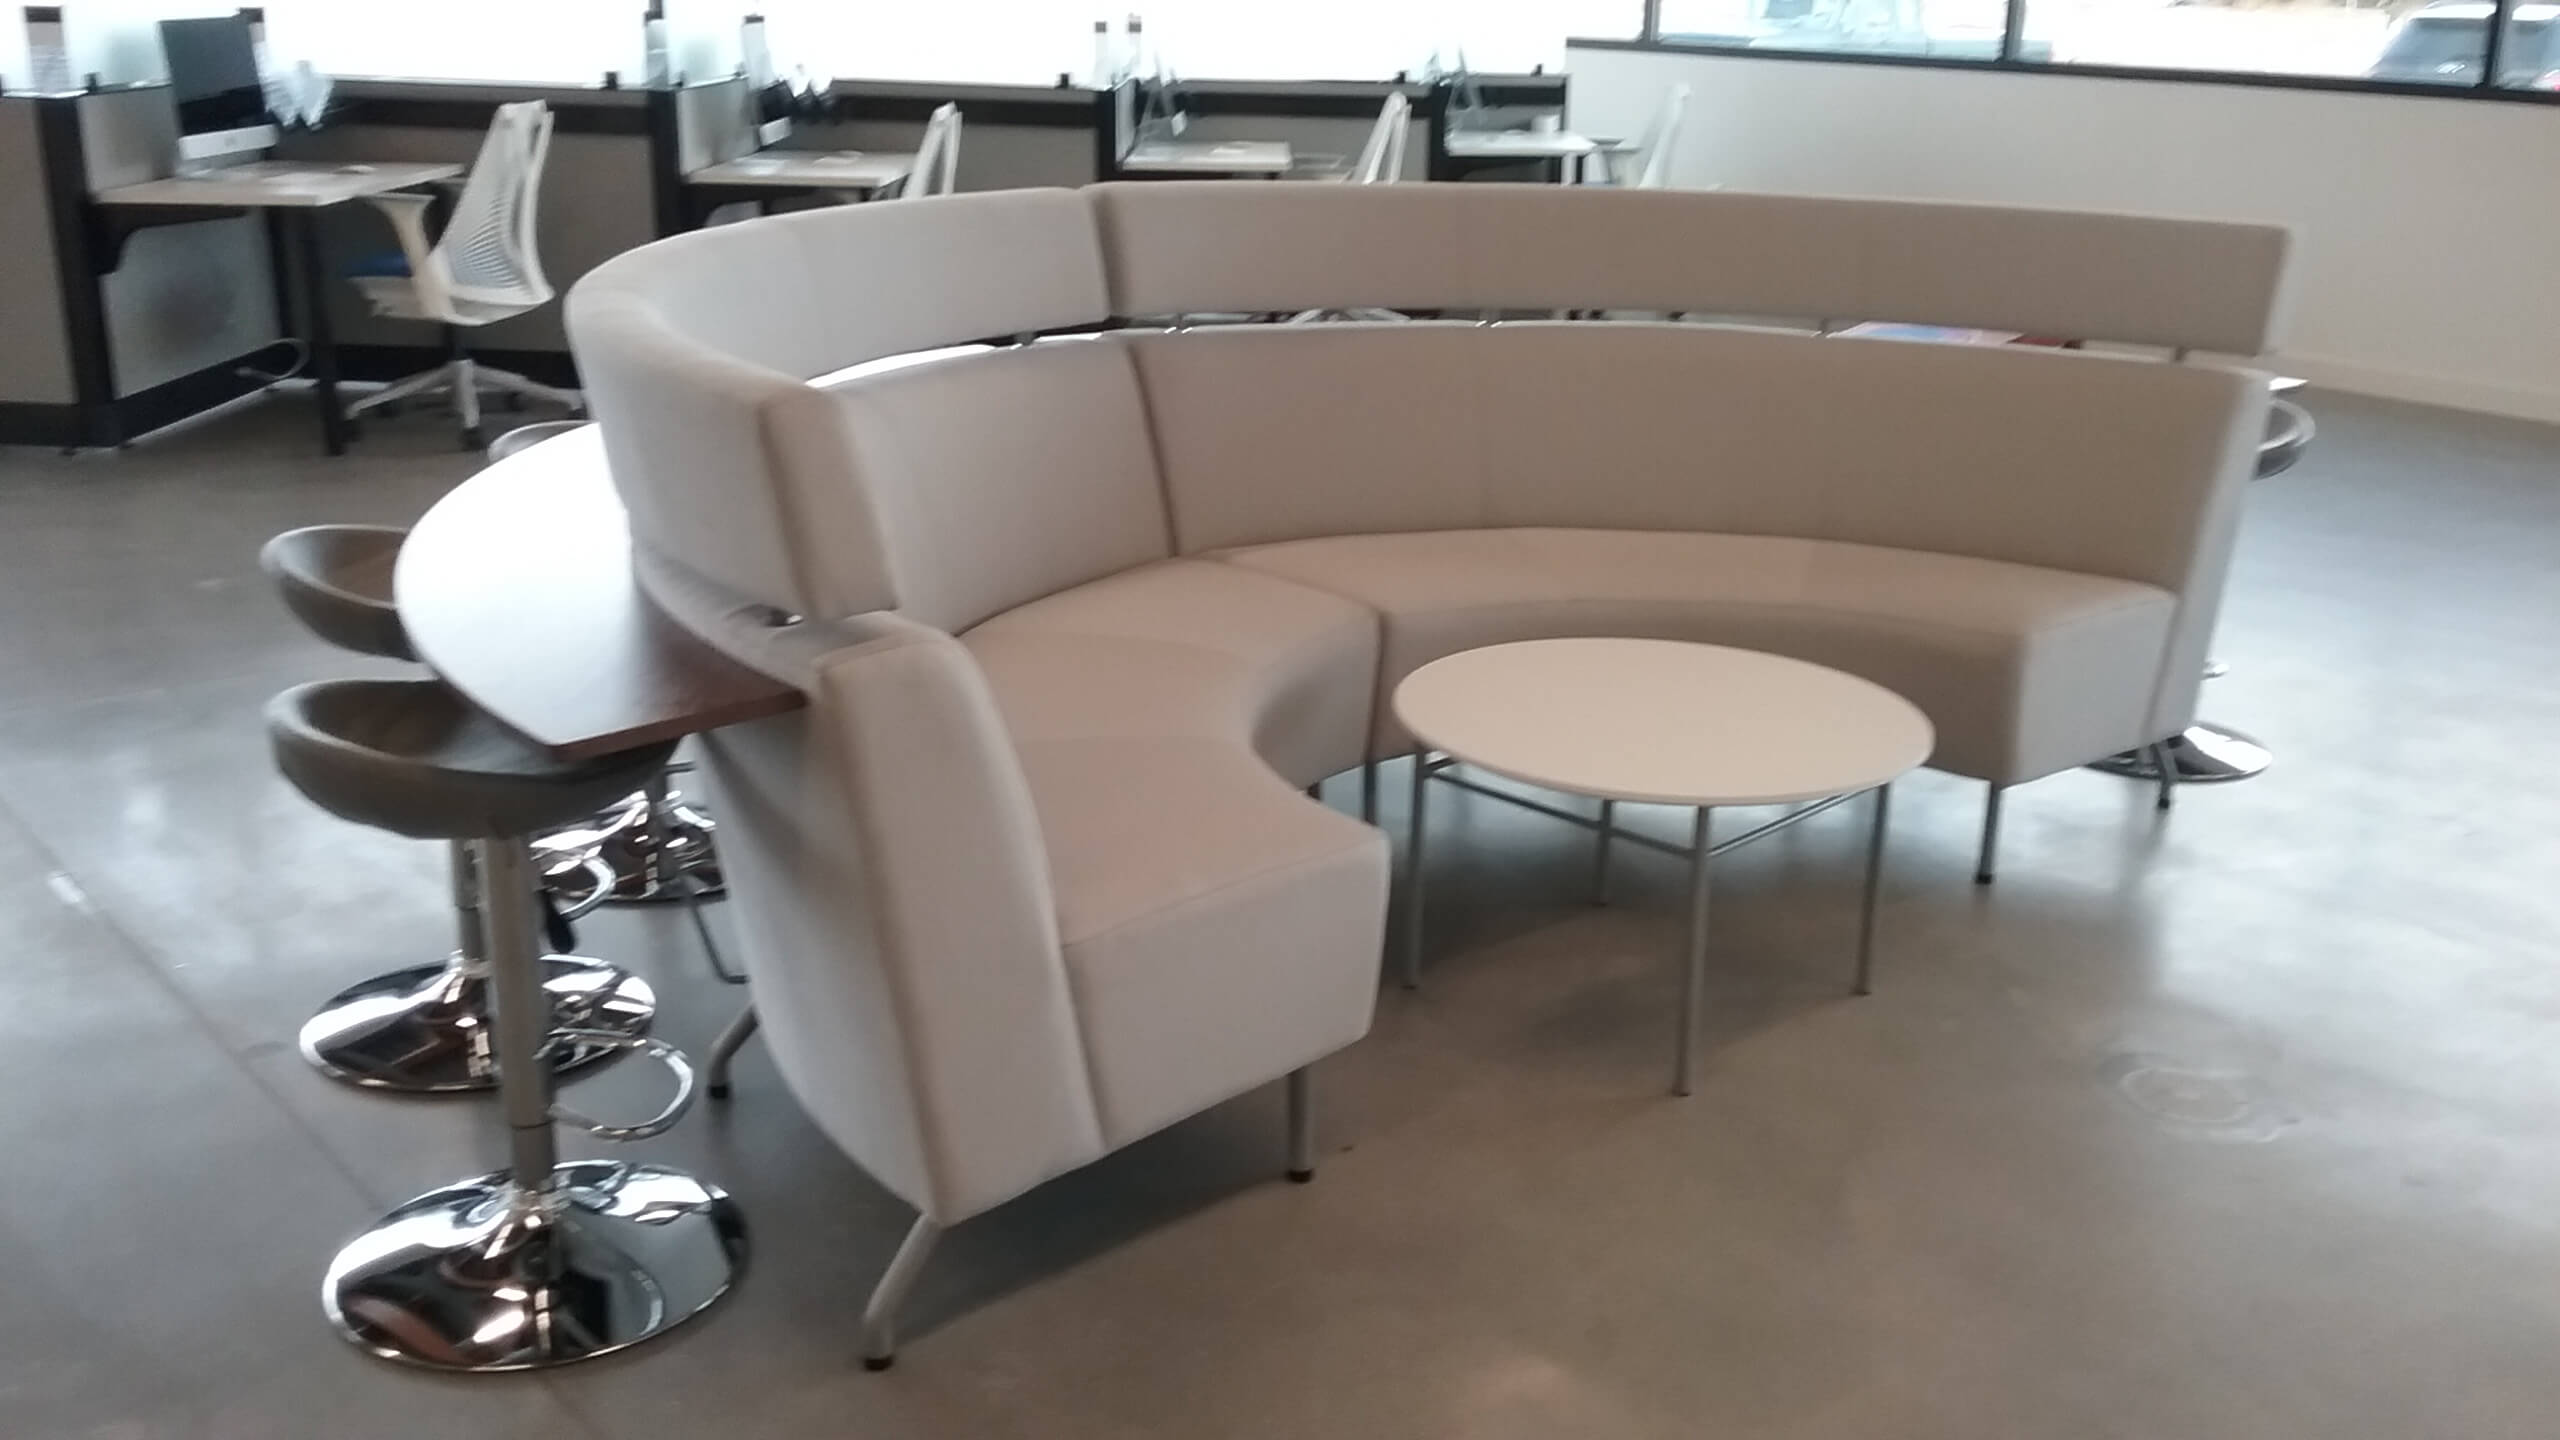 Office Design Furniture Installation In Boise Id For